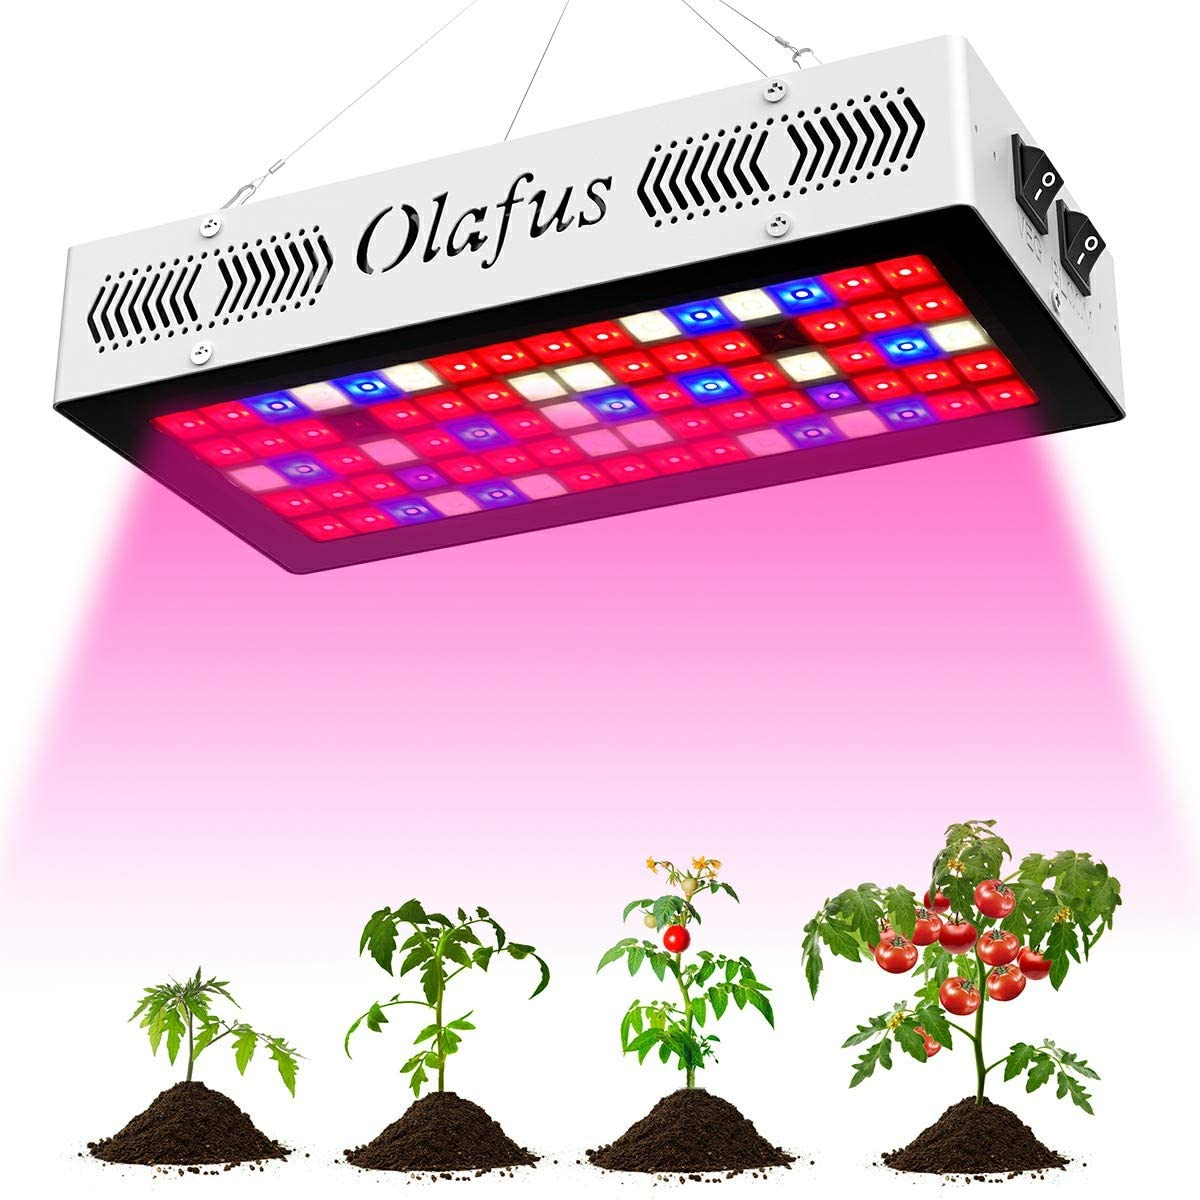 Olafus LED Grow Light for Indoor Plants 300W(80pcs 10W LEDs), Full Spectrum Grow Lamp, Veg and Bloom Dual Mode, Similar Sun Light IR UV Plant Growing Lights for Seeding Vegetable Flower